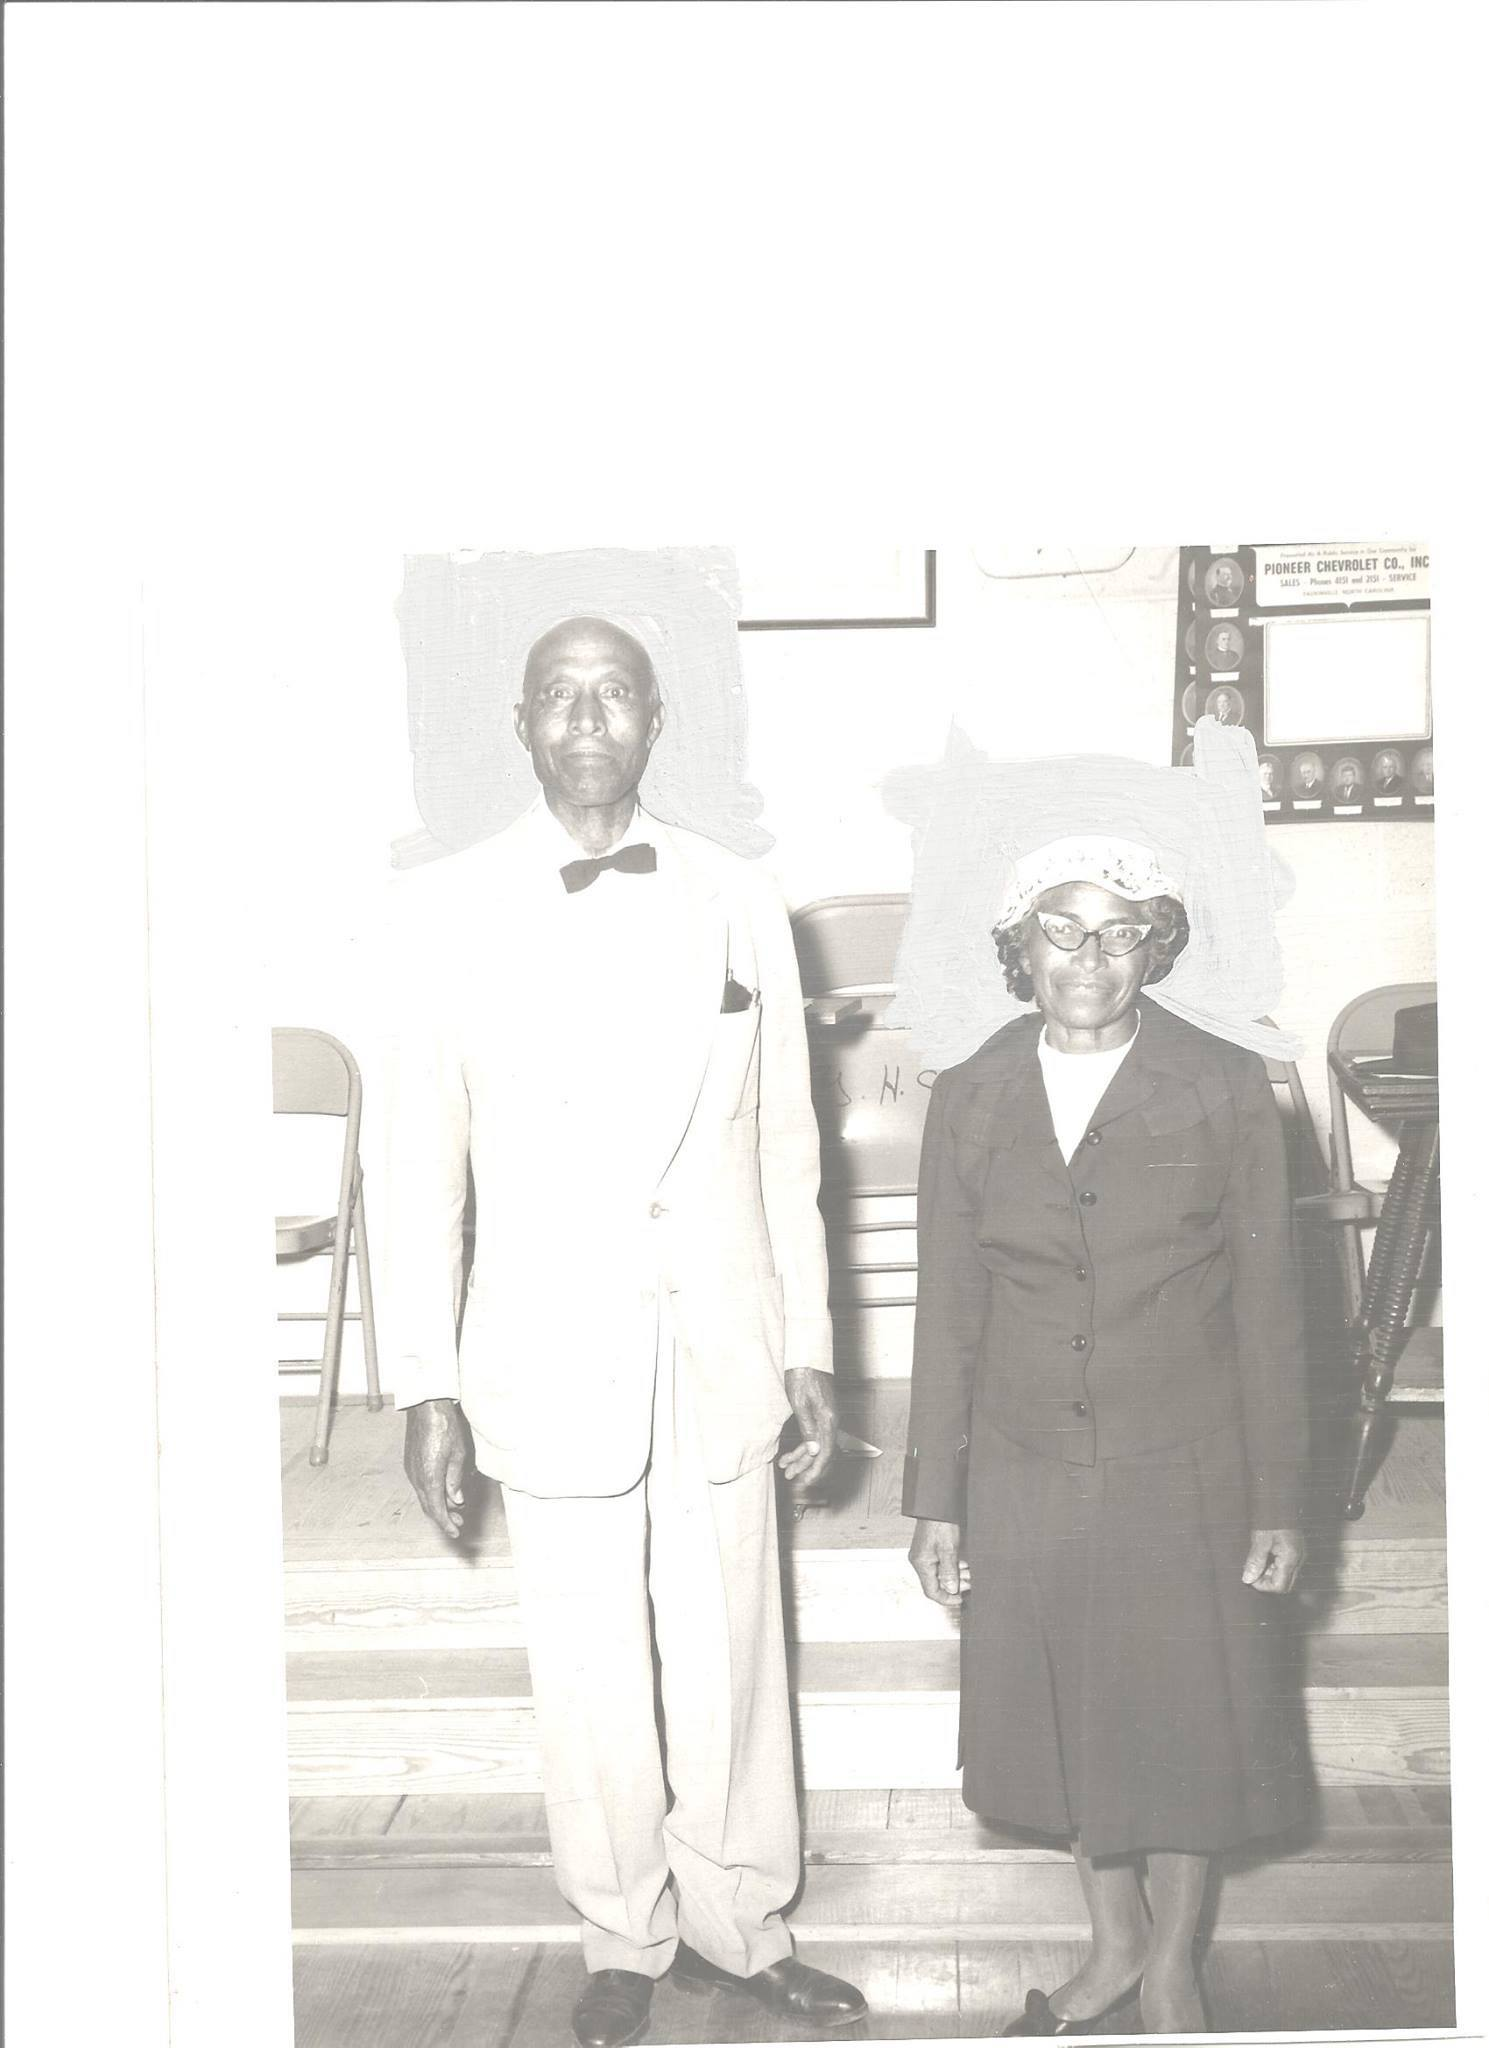 Black and white photograph showing a Black man and woman stood facing the camera.